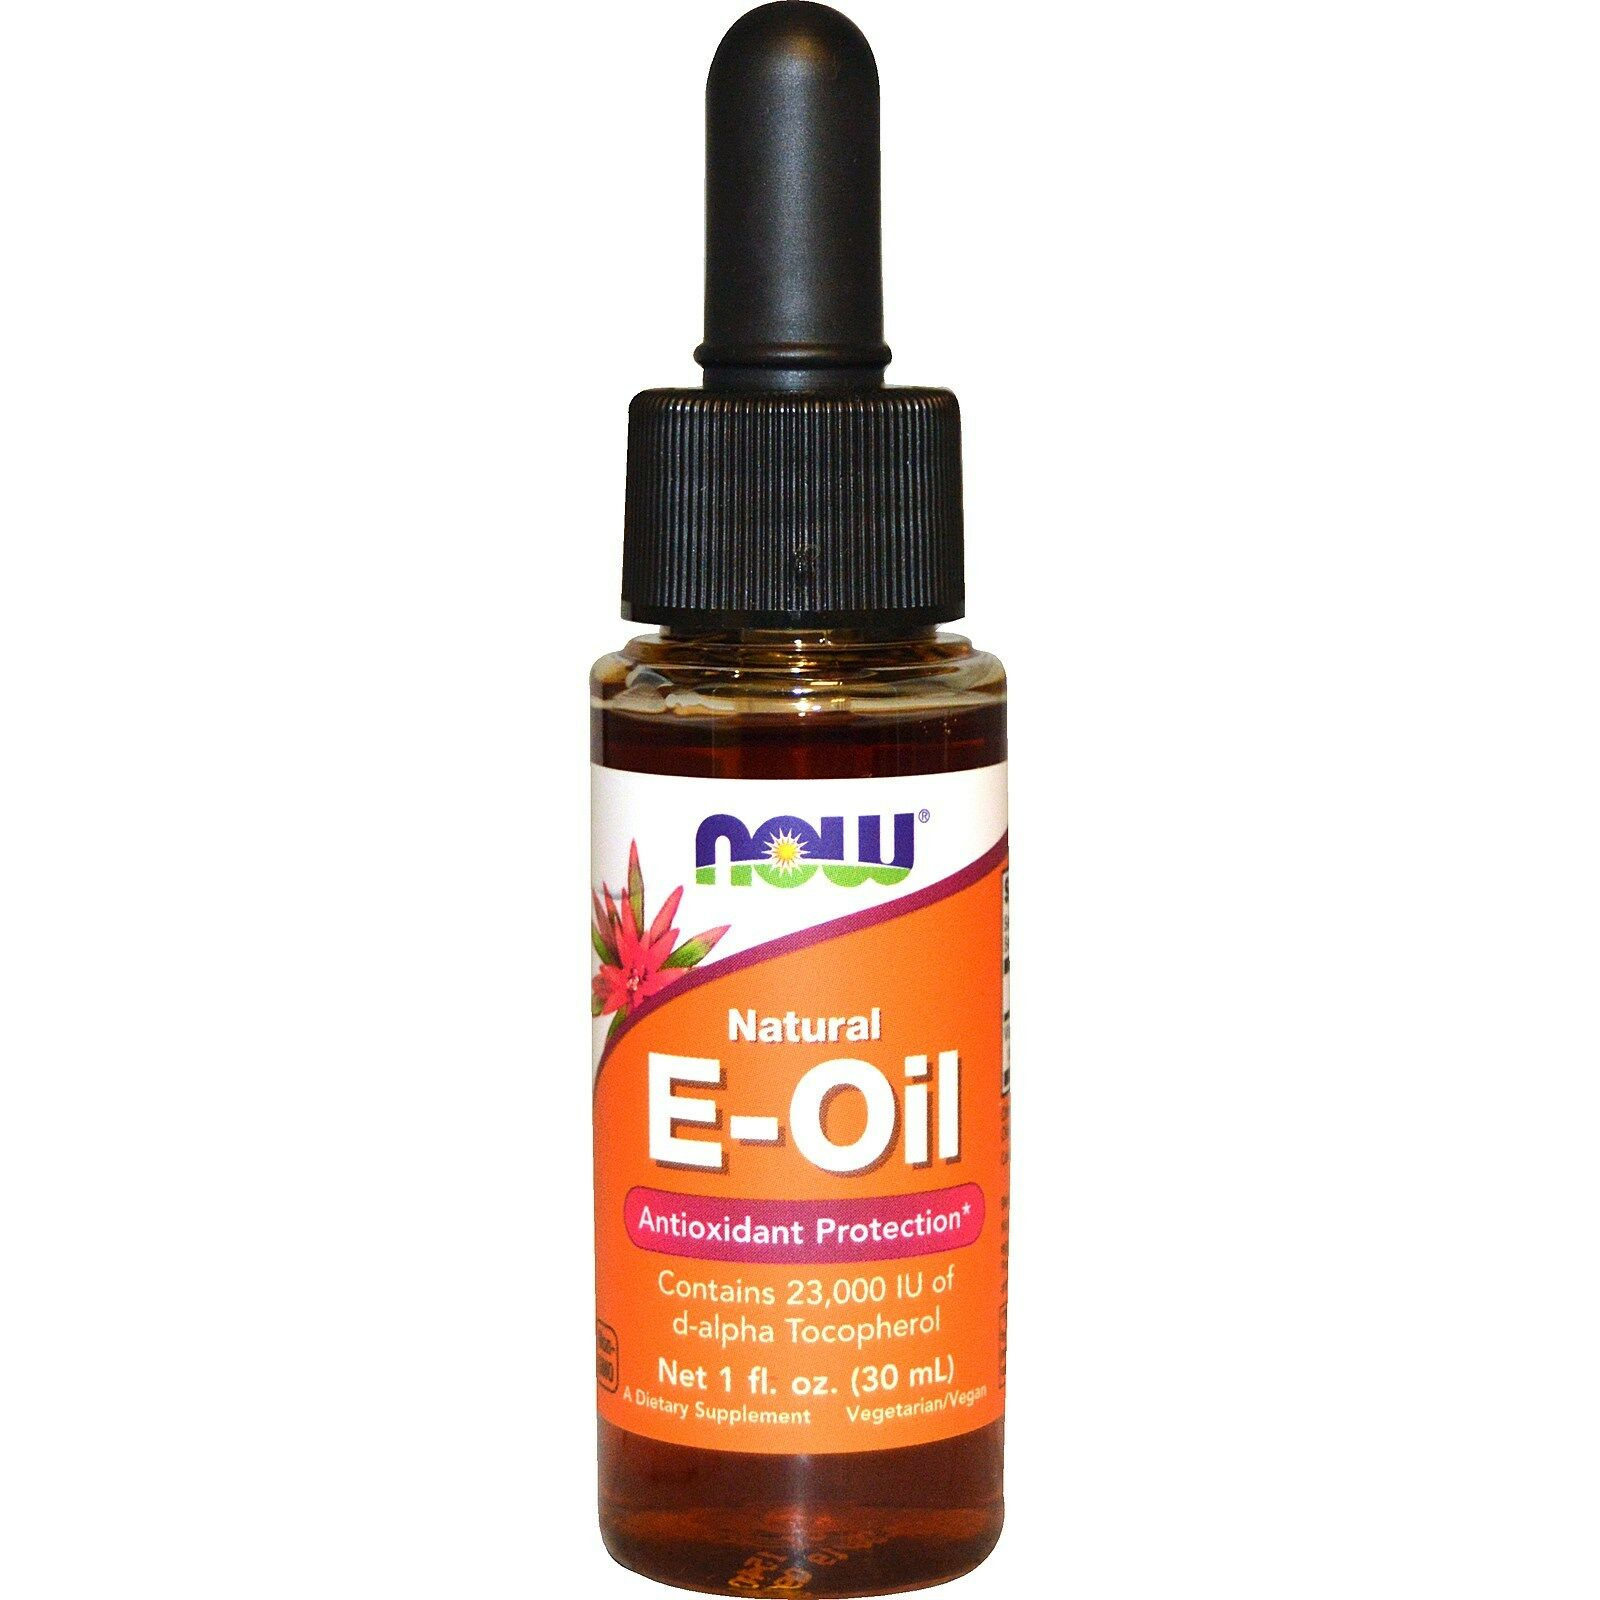 NOW Foods 1 oz Essential Oils and Blend Oils - FREE SHIPPING! Vitamin E-Oil (Vegetarian)